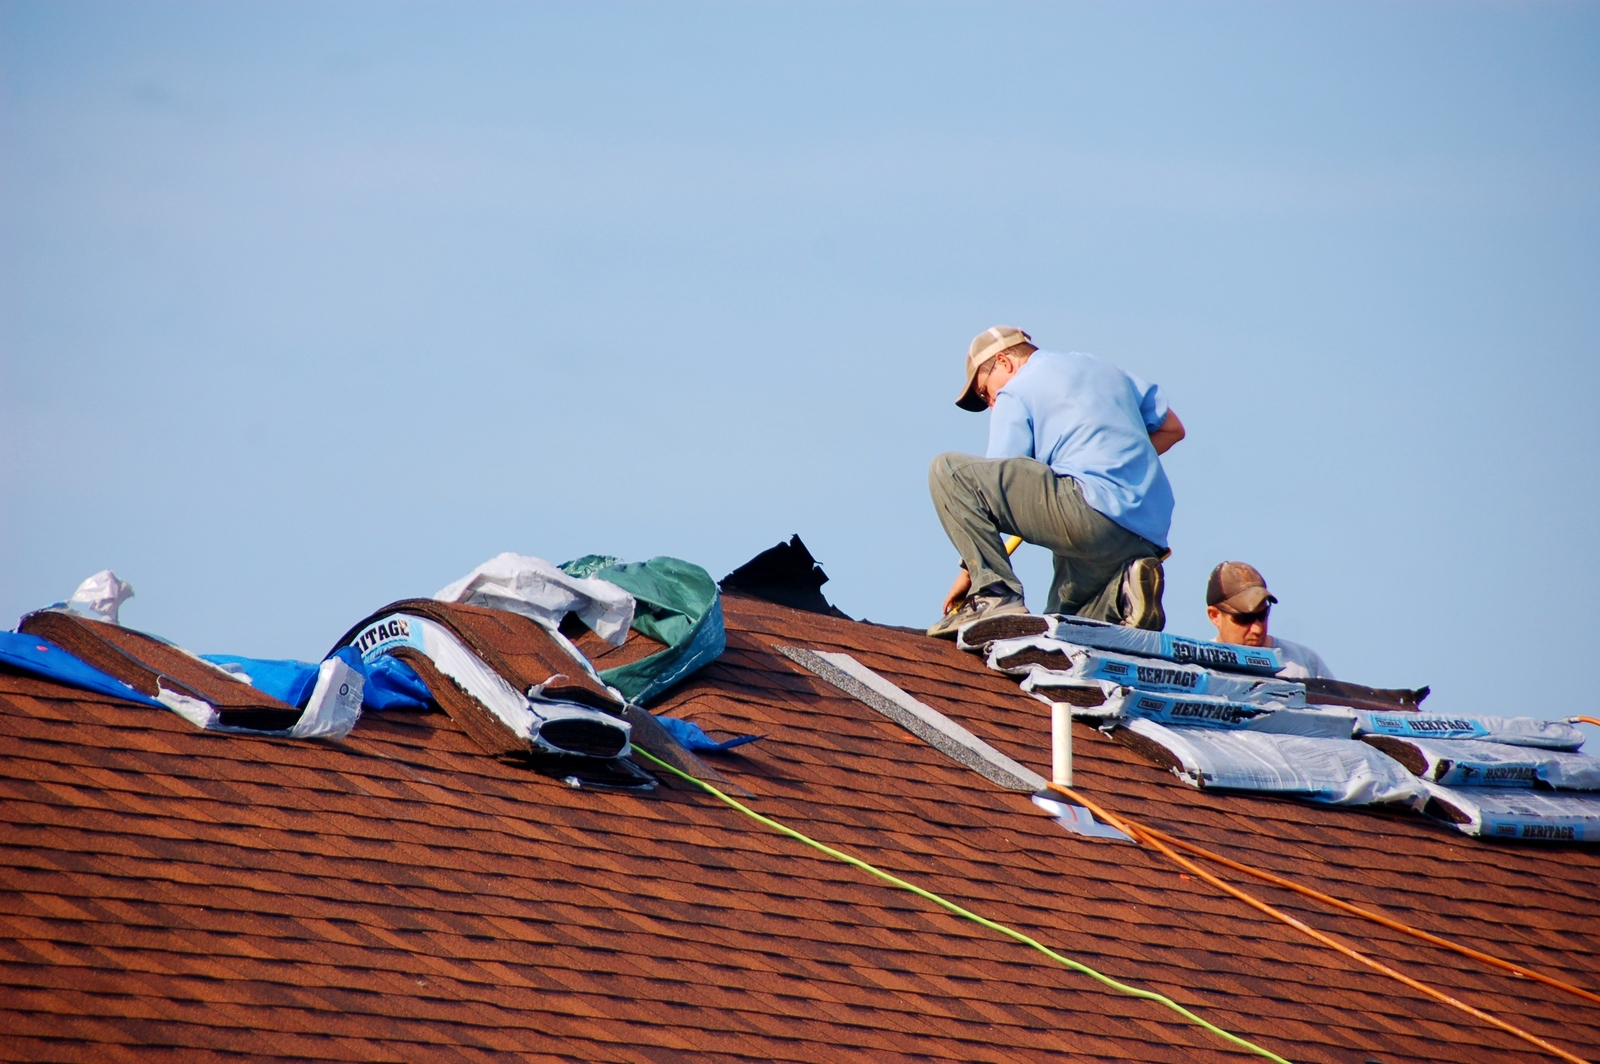 roofing contractors working on damaged roof